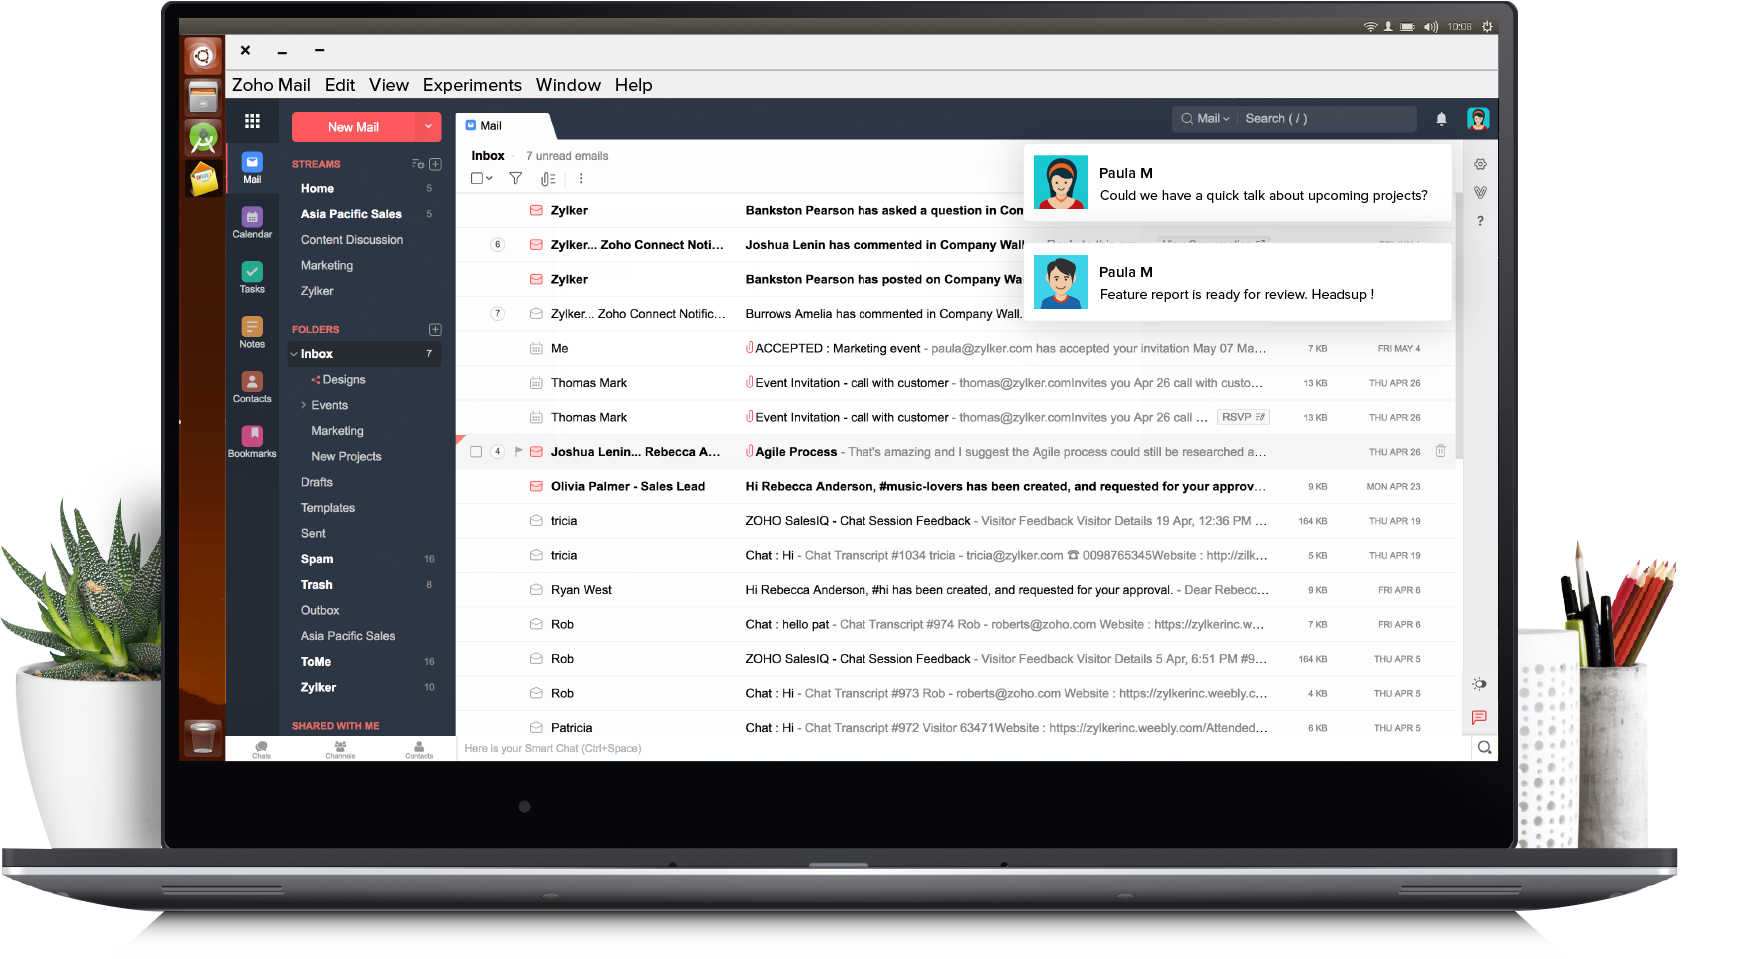 Download Zoho Mail Desktop App for Windows, Mac, Linux Platforms